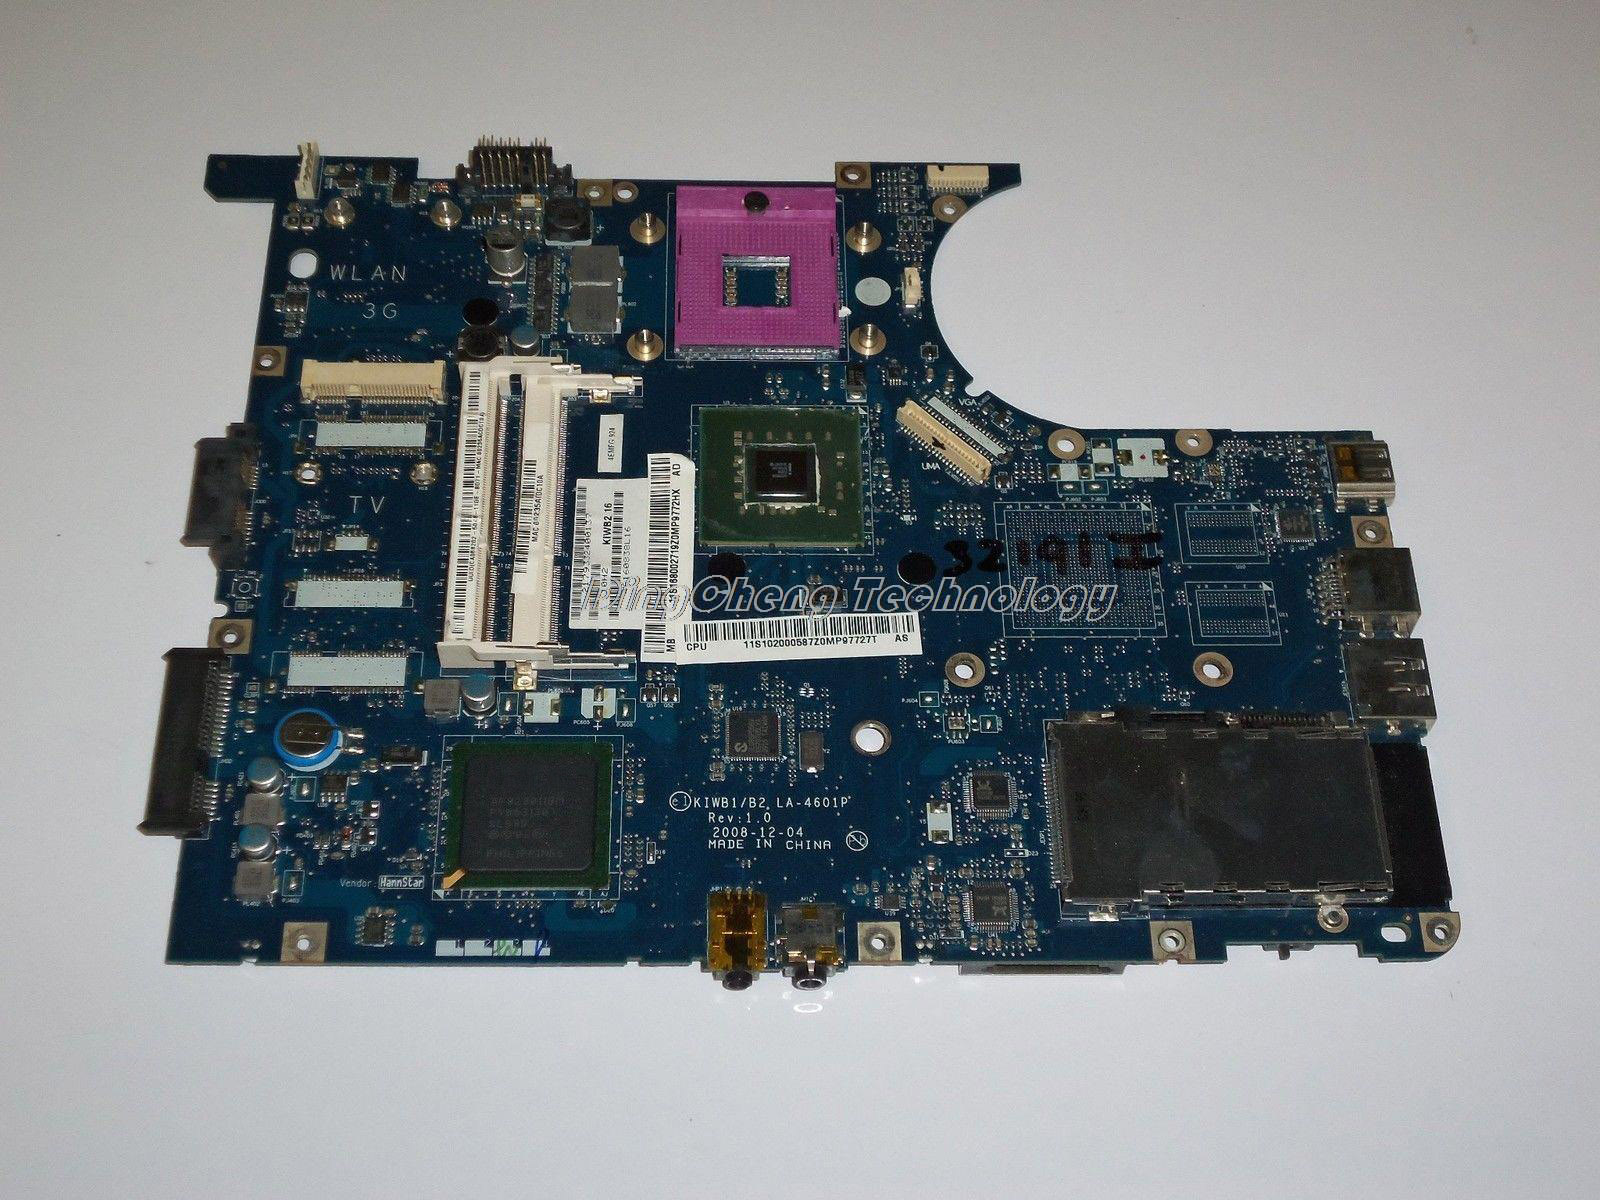 Laptop Motherboard for Lenovo y550 LA-4601P integrated graphics card 100% tested FullyLaptop Motherboard for Lenovo y550 LA-4601P integrated graphics card 100% tested Fully